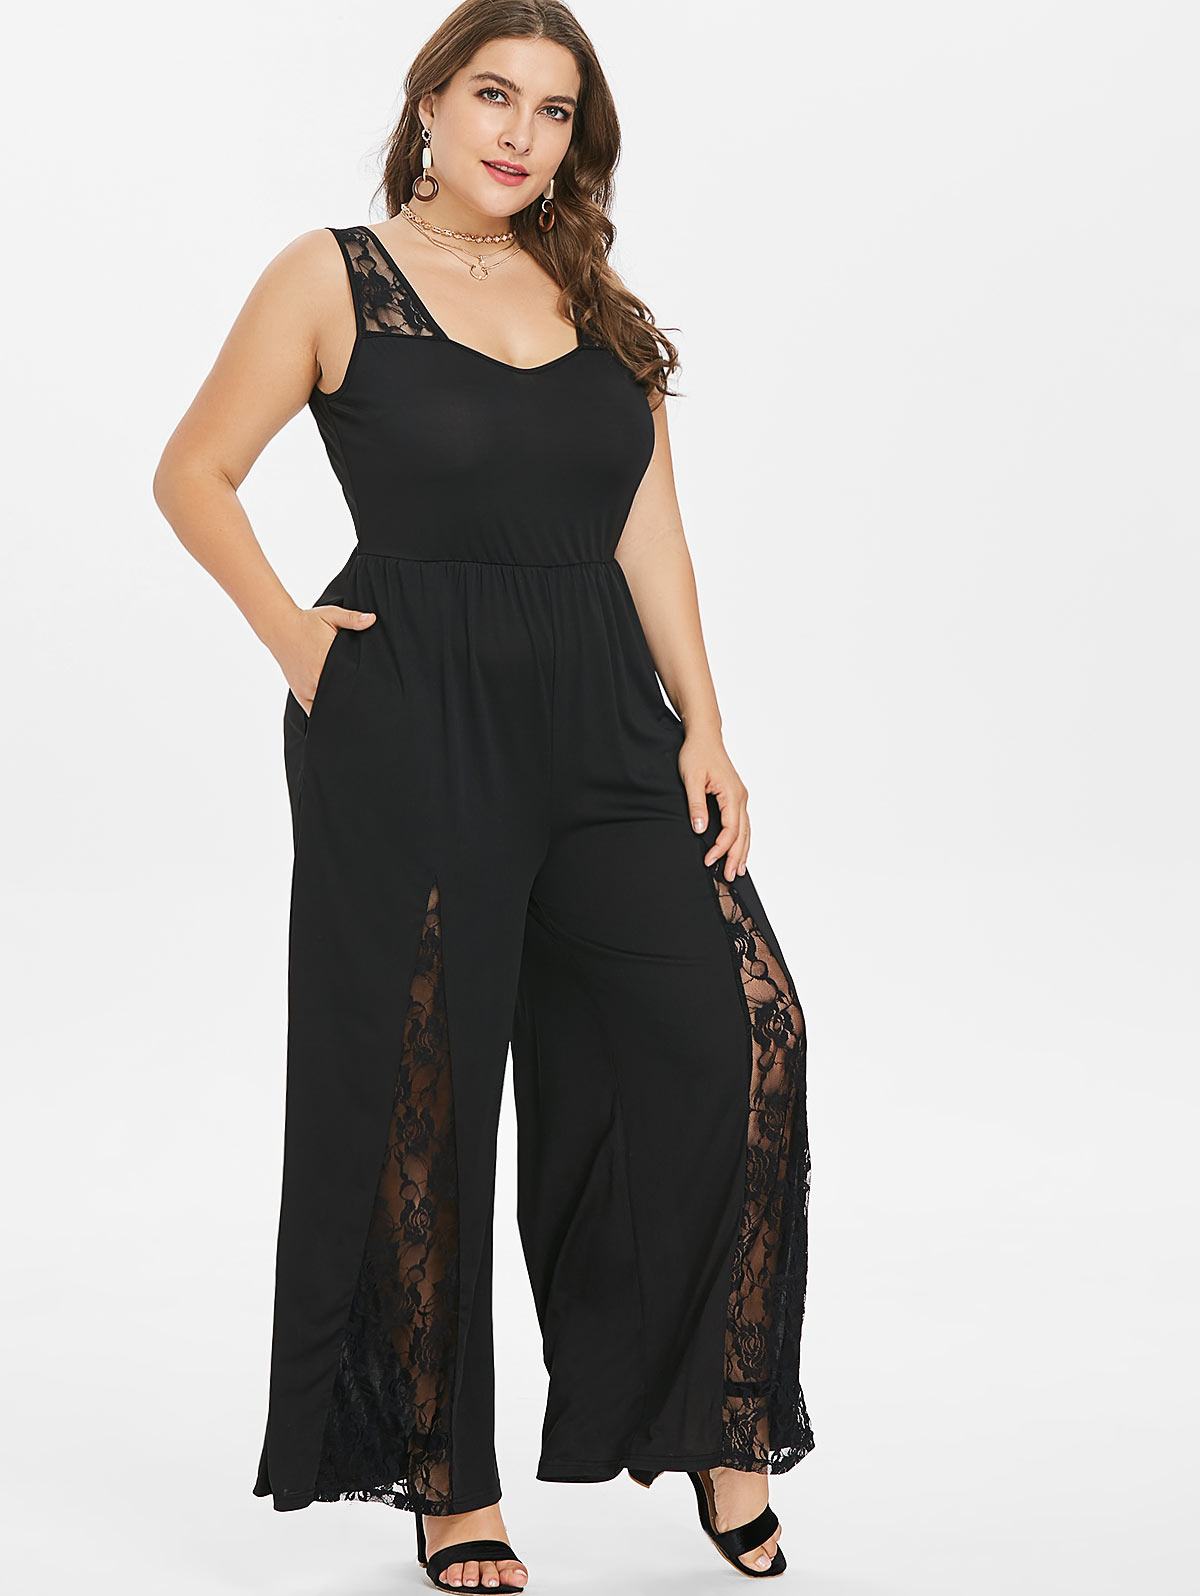 faf51412774 Detail Feedback Questions about Wipalo Women Plus Size 5XL Lace Panel Wide  Leg Jumpsuit Casual Solid Plunging Neck Sleeveless Floor Length Jumpsuit  Big Size ...